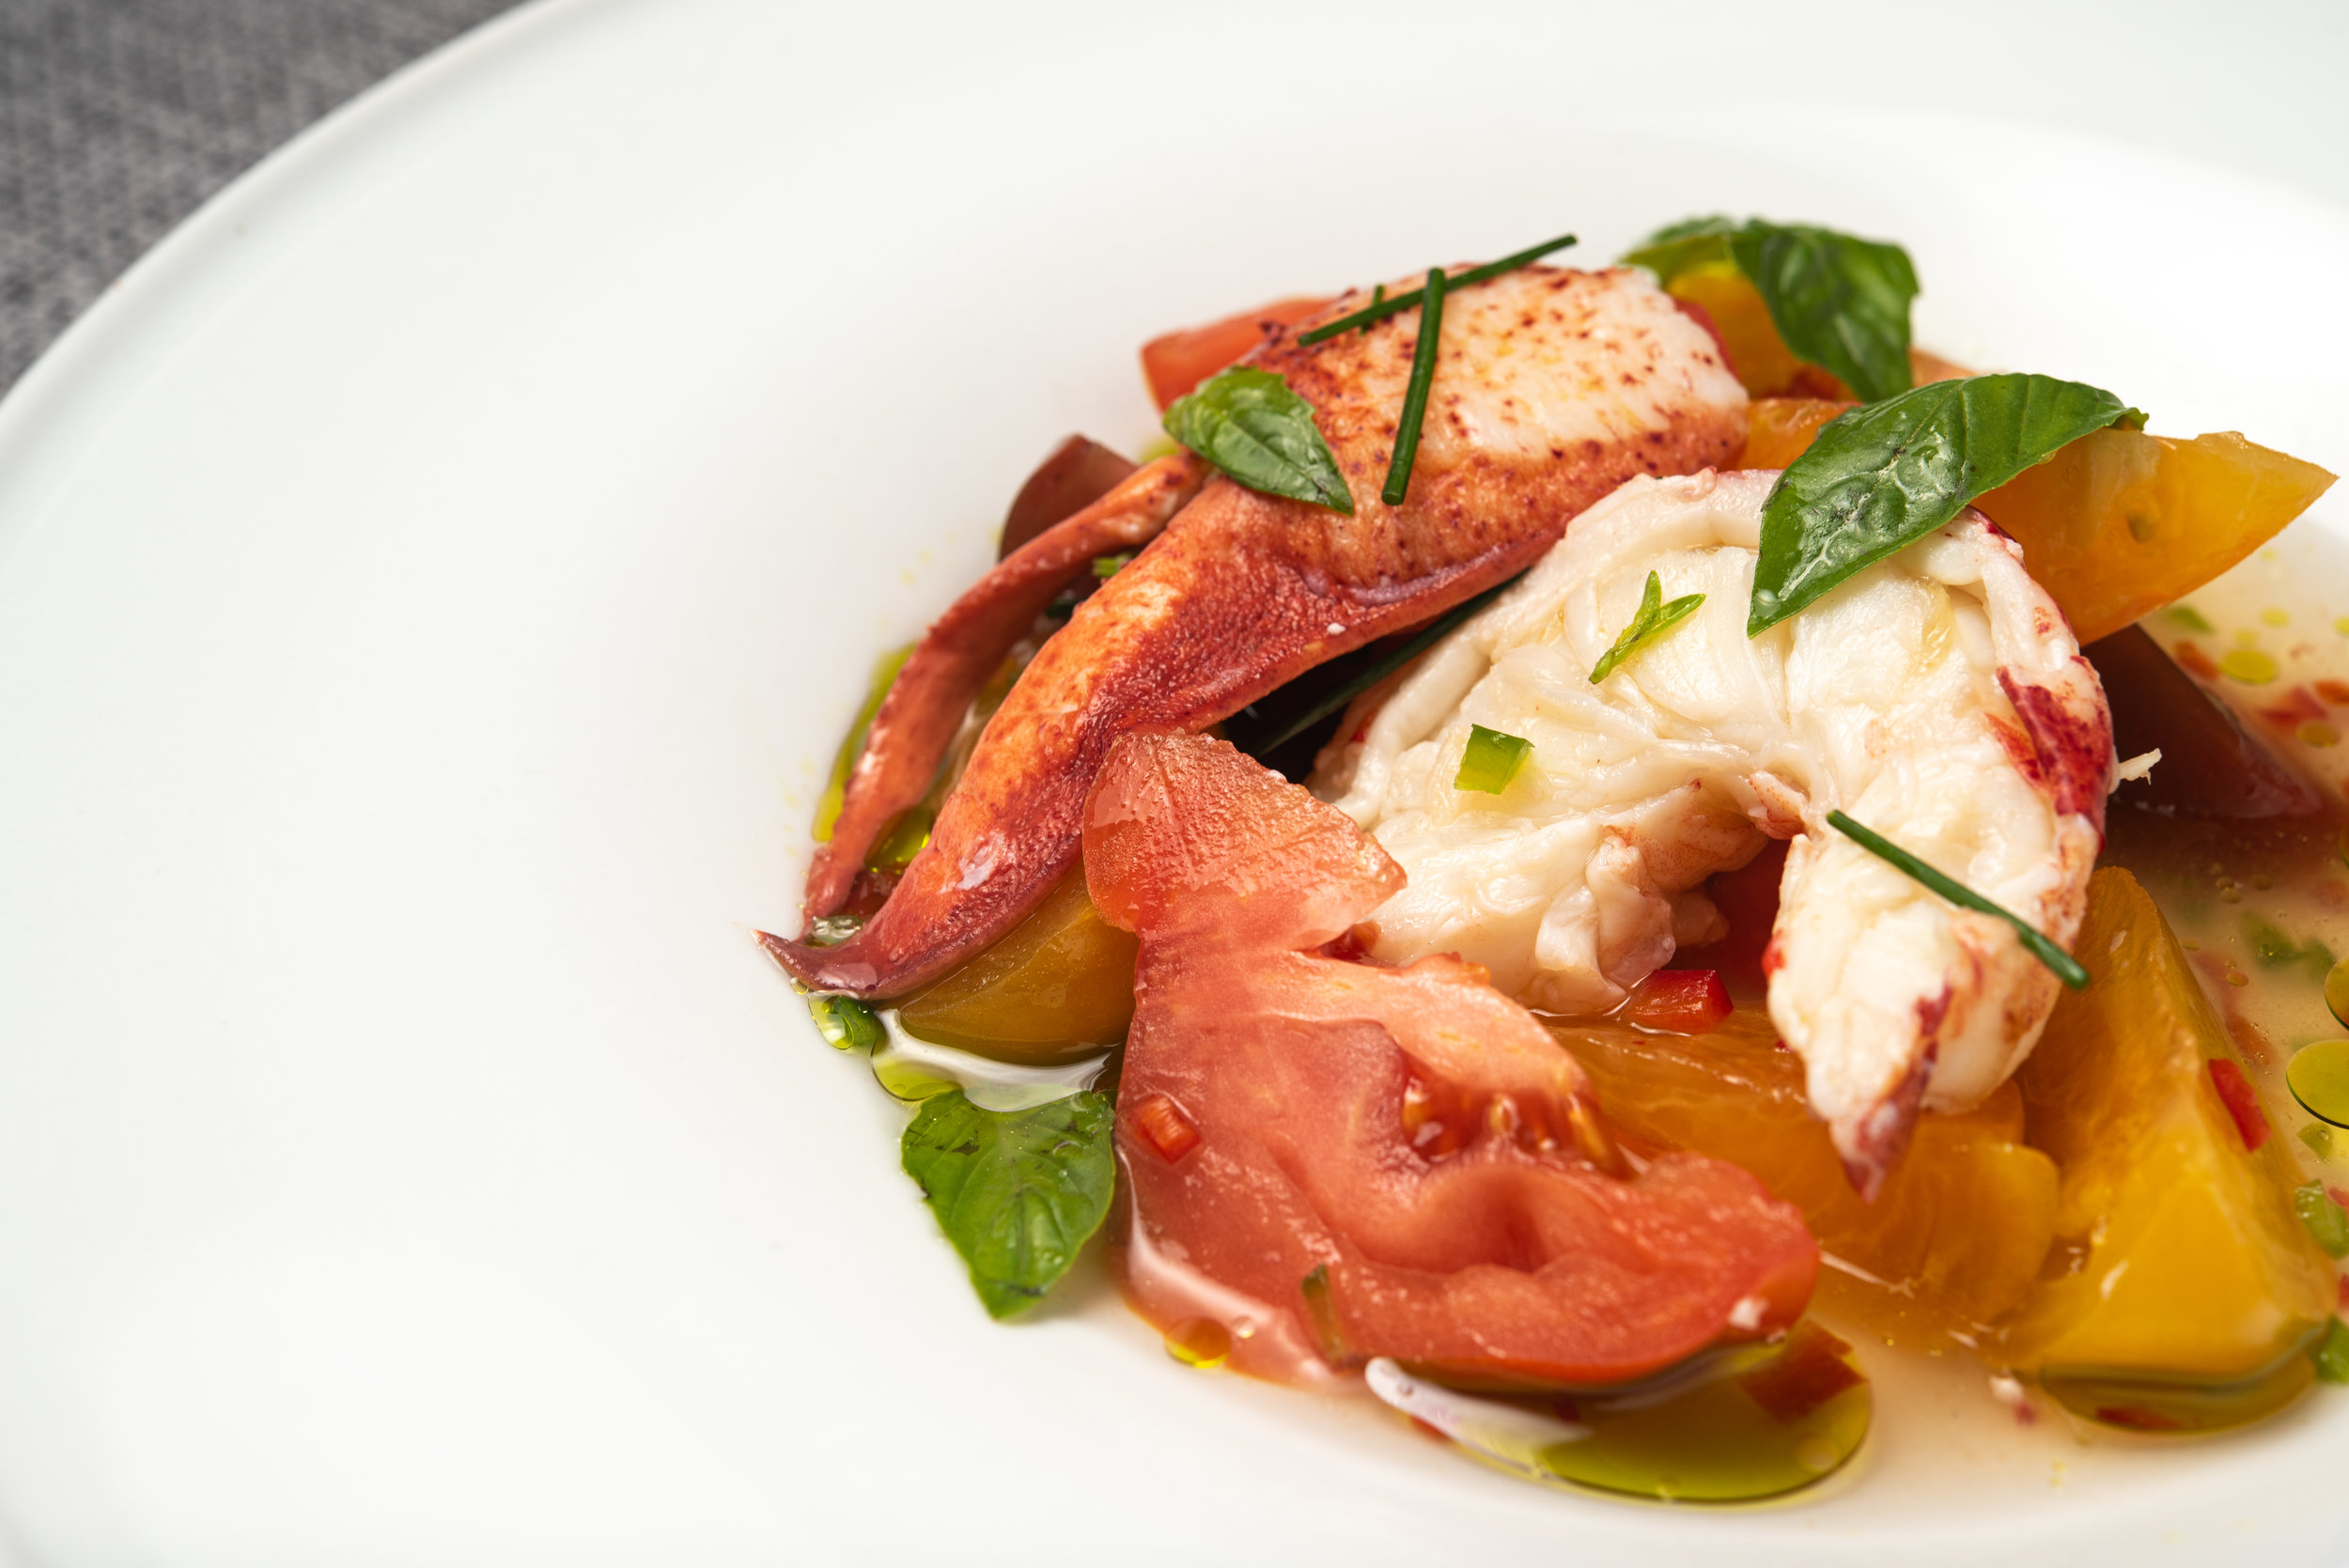 Maine Lobster & Tomatoes with Heirloom Tomatoes, Chiles, Fresh Horseradish Infused Tomato Consume, Herbs, Blossoms (1).jpg